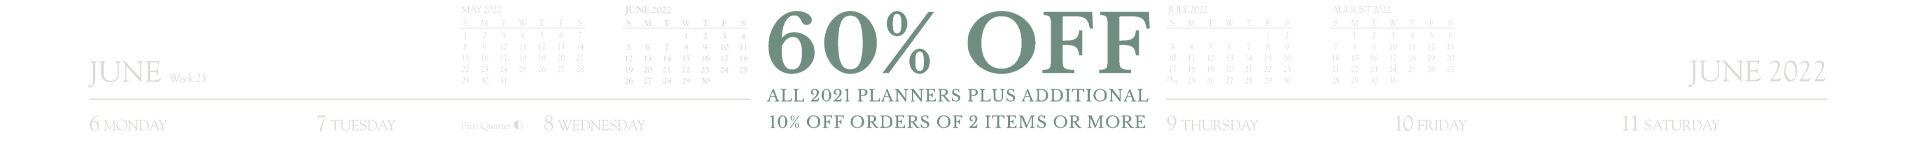 60% off all 2021 planners plus additional 10% off orders of 2 items or more